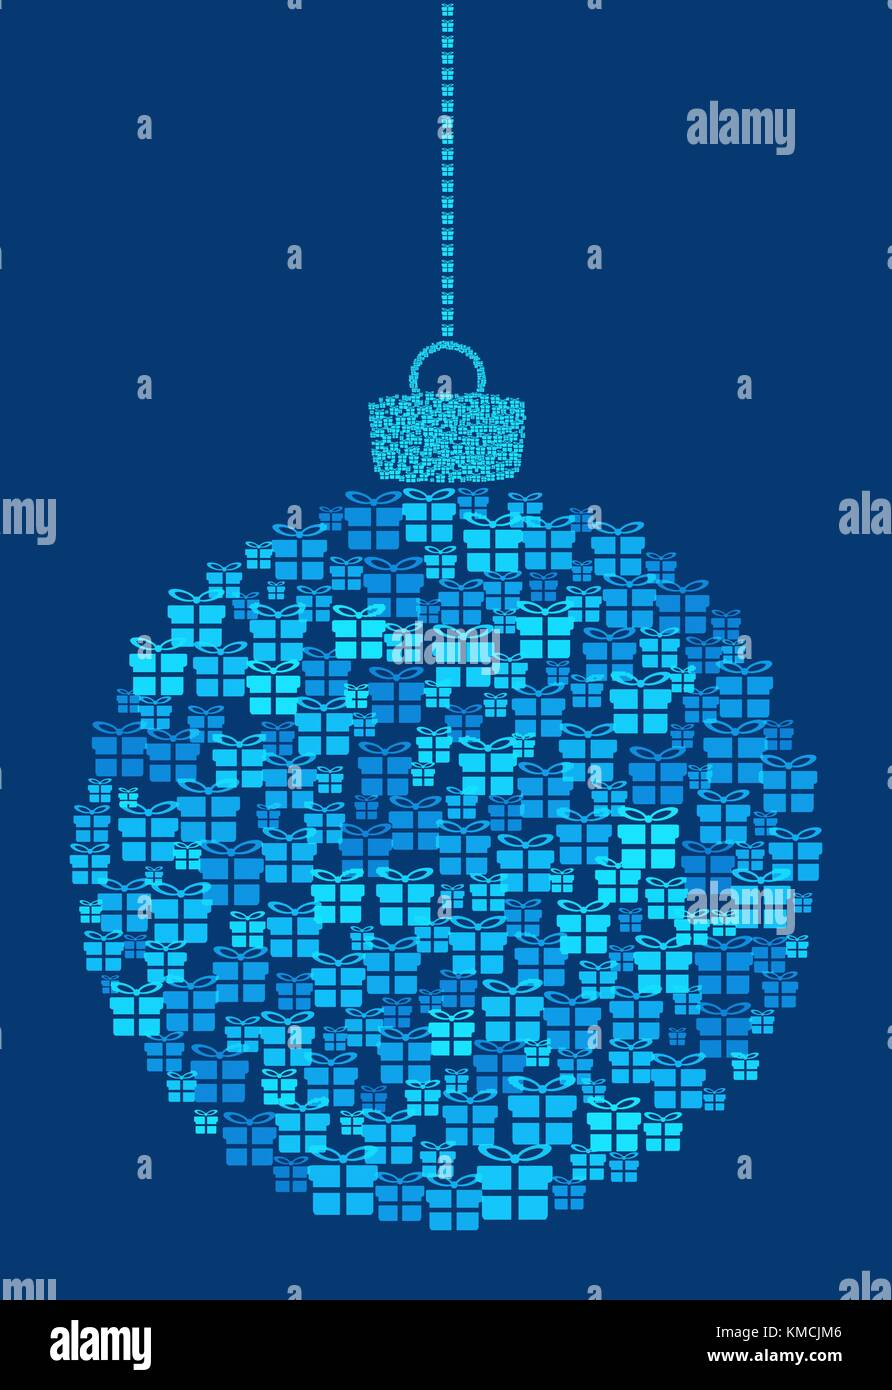 Vector hanging abstract Christmas ball consisting of gift box icons on blue background. - Stock Image